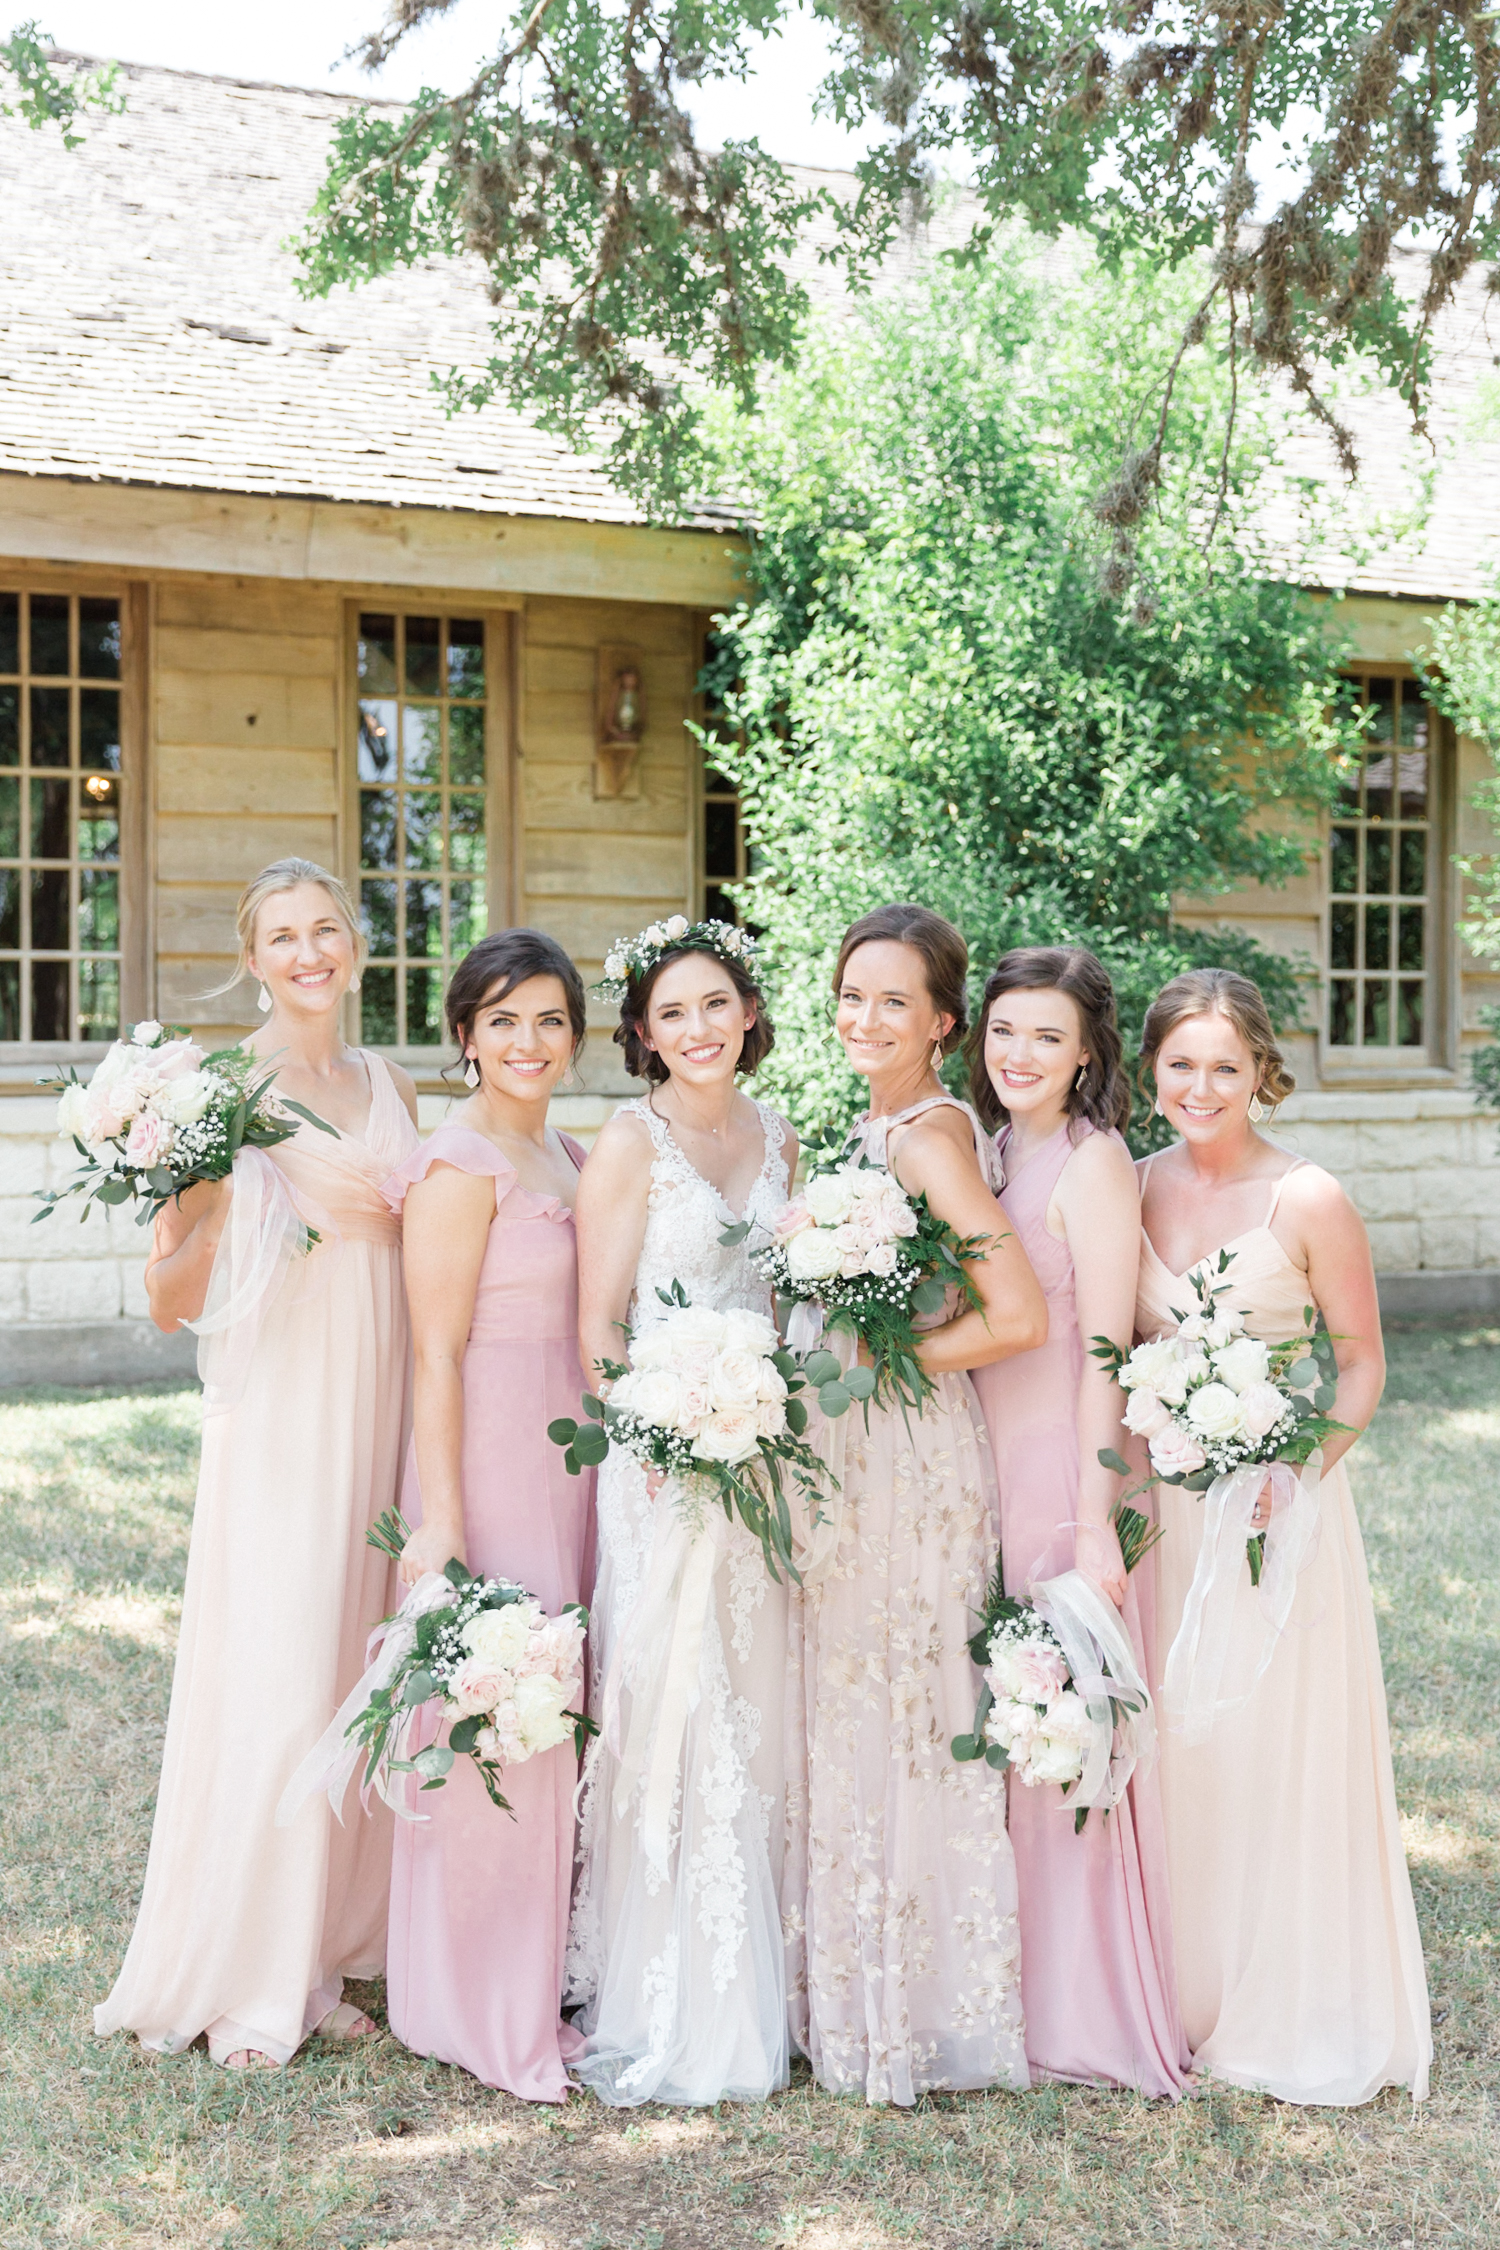 San Antonio Texas Wedding Engagement Photographer Photography Hill Country Texas Old Town Red Bud Hall Summer Blush Ivory Tan Rustic Classic Elegant Wedding San Antonio Austin Texas photographer 48